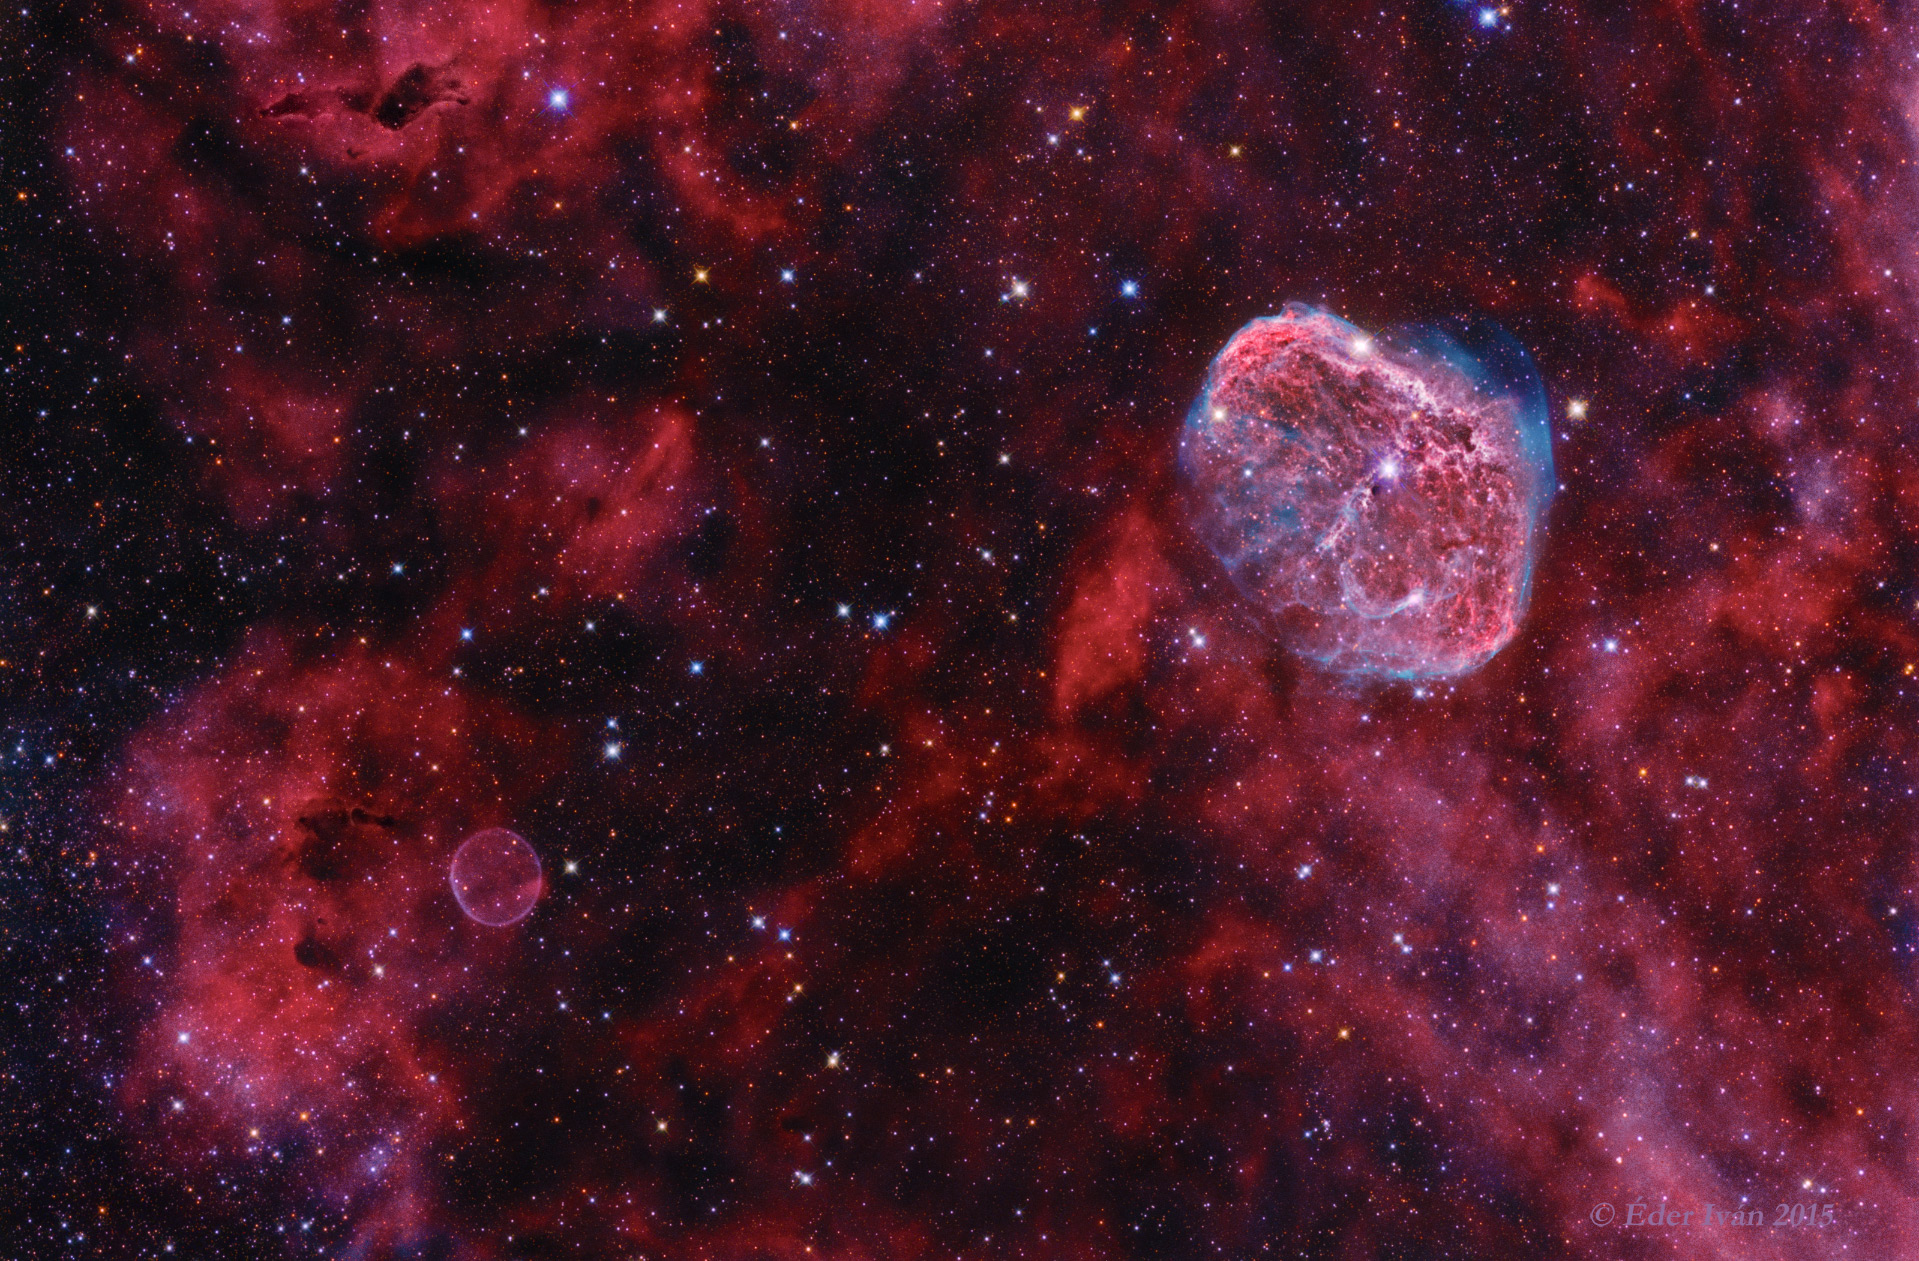 Soap Bubble and Crescent Nebula (NGC 6888)